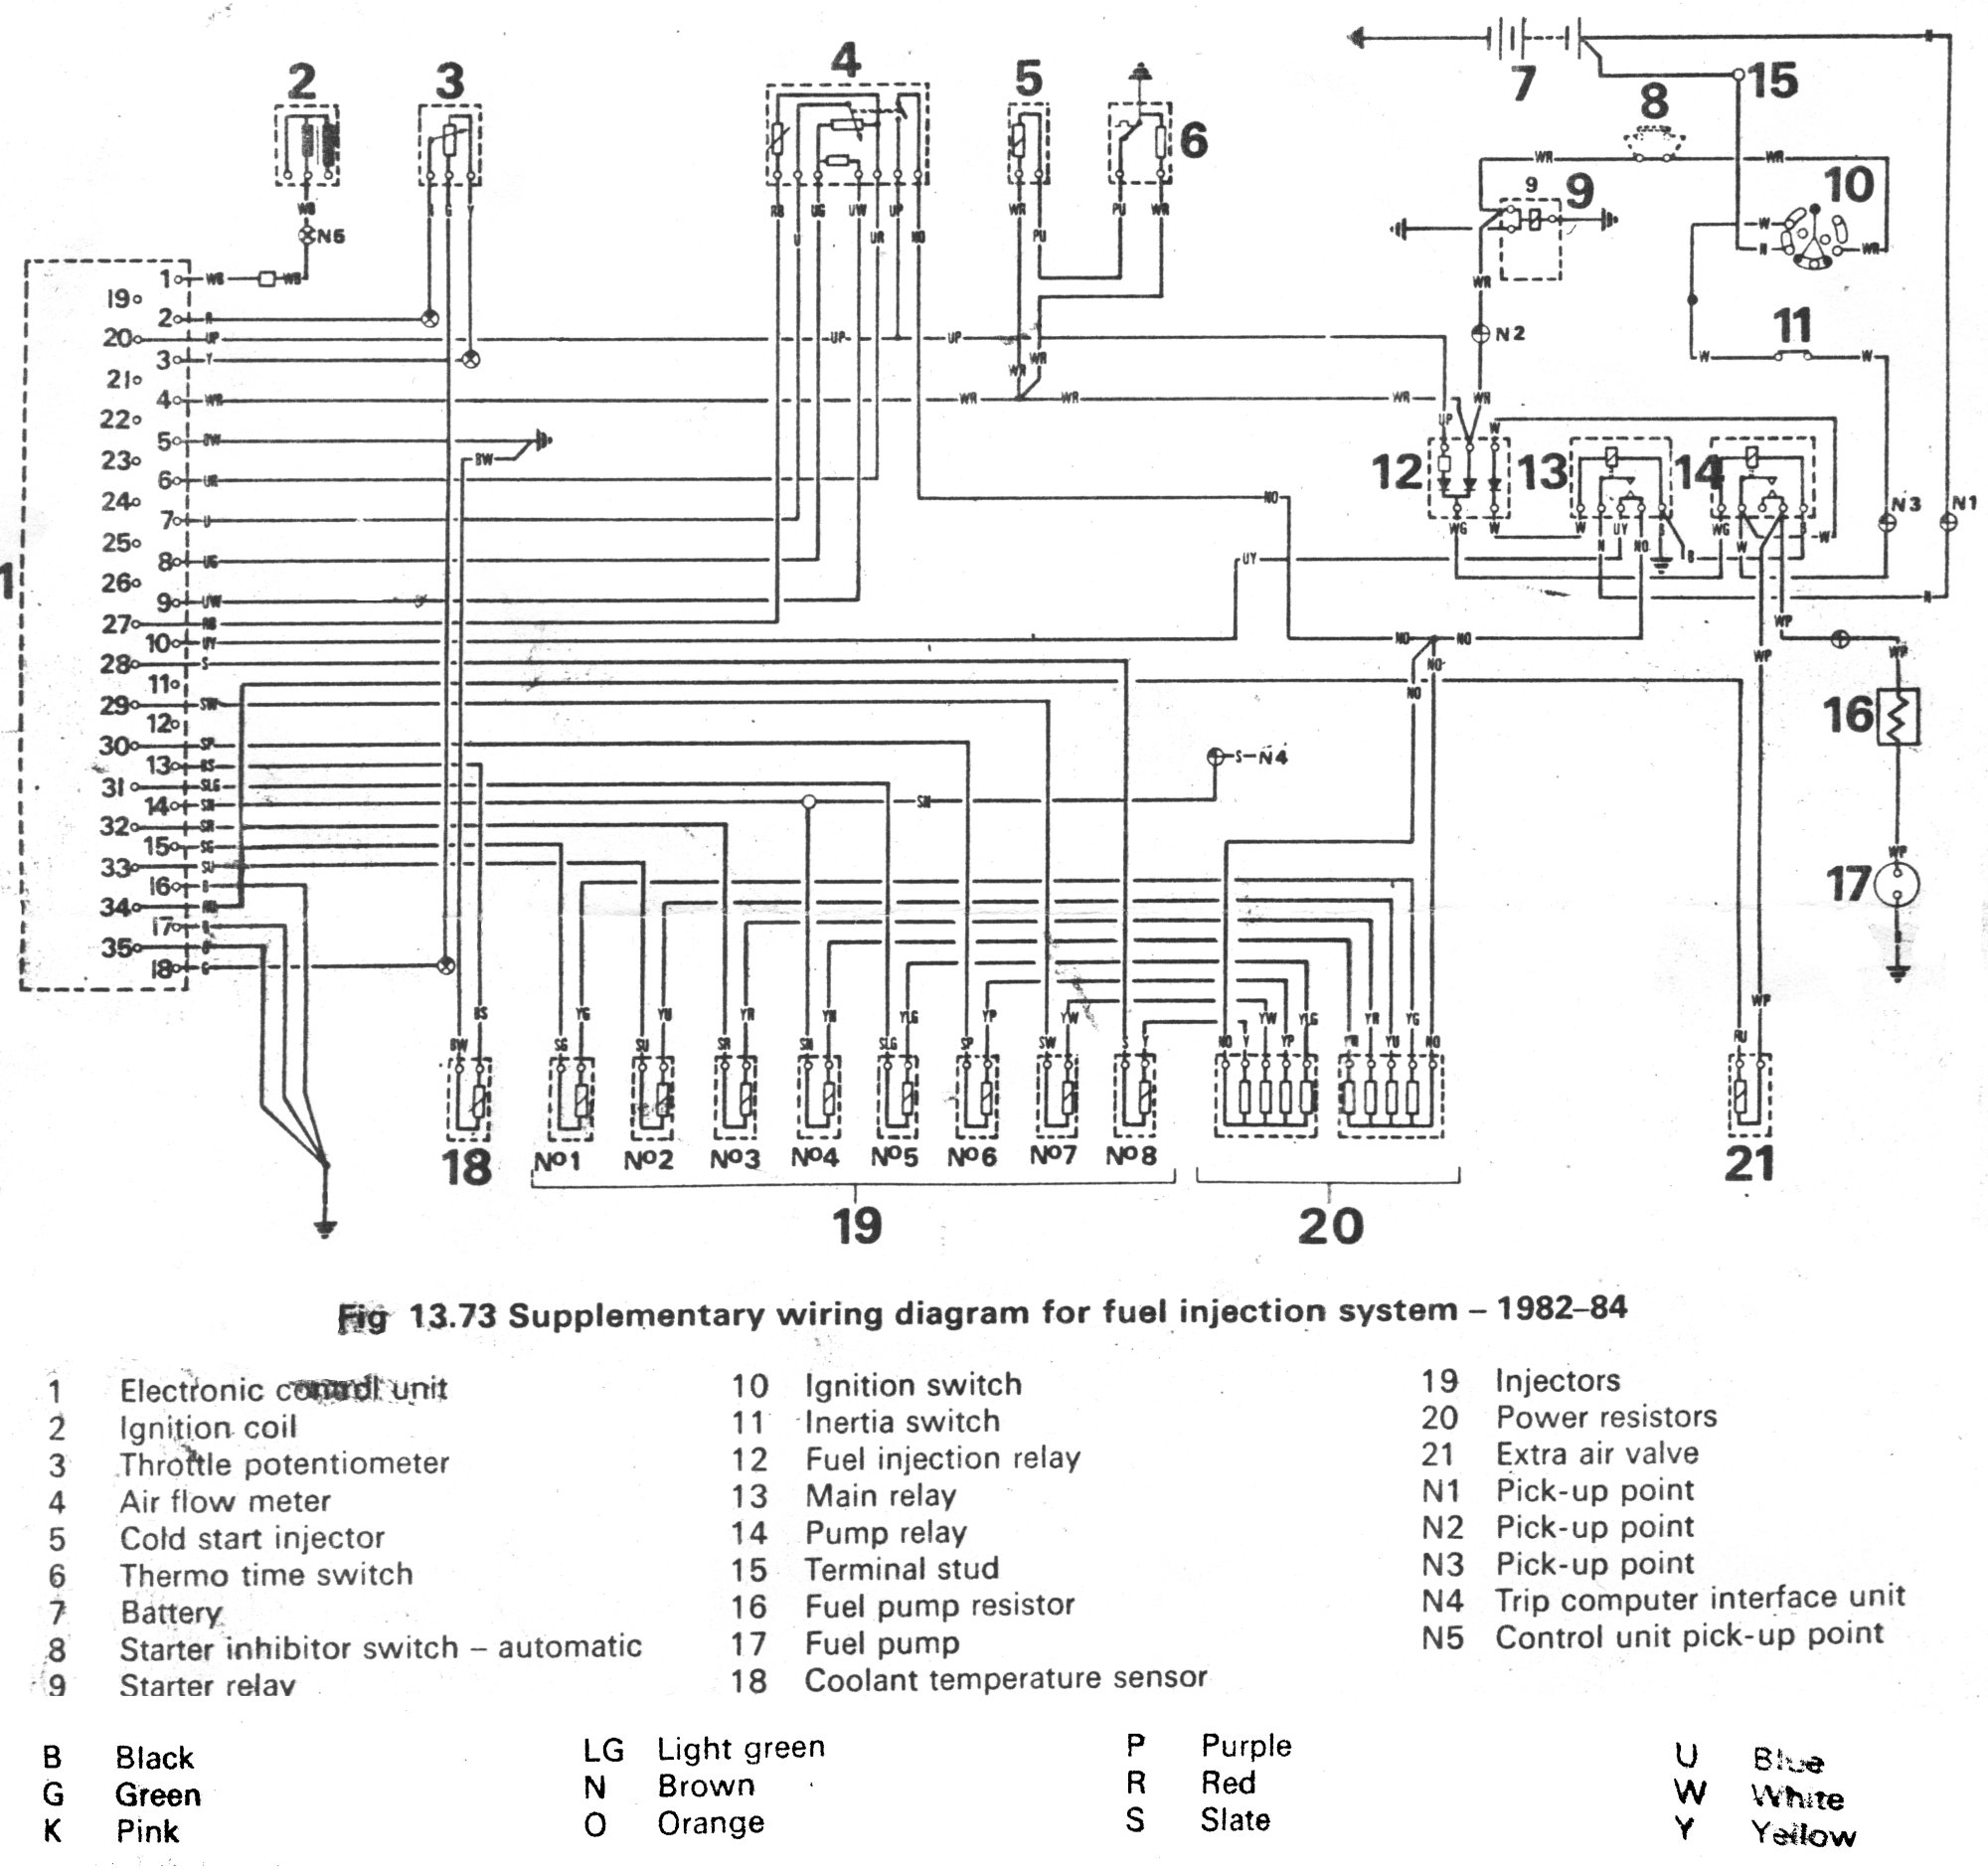 lucas_efi_1982_1984 range rover classic wiring diagram 100 images land rover 2004 Ford F-150 Fuse Box Diagram at bakdesigns.co